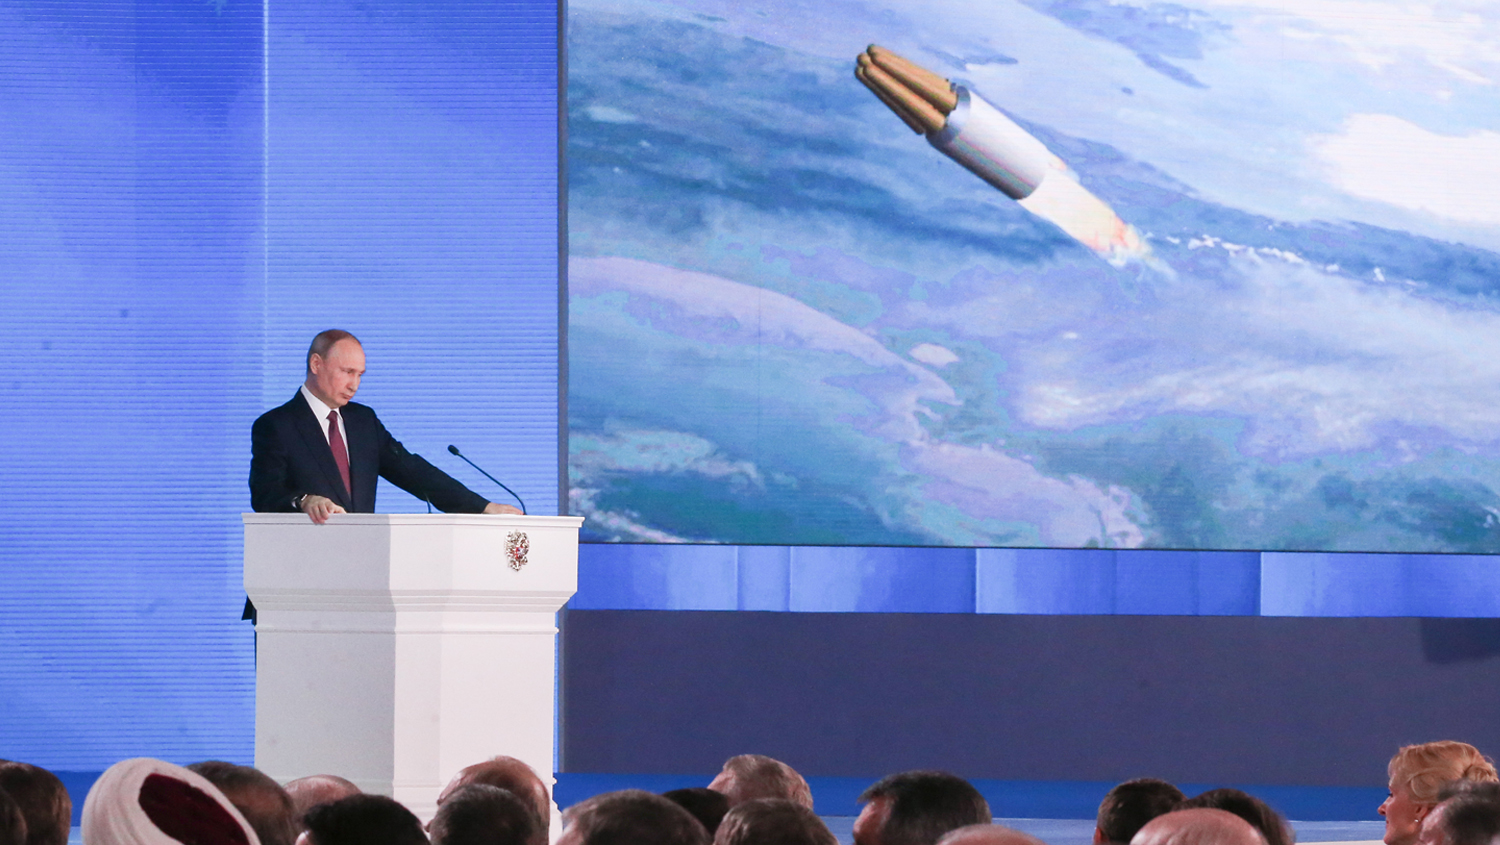 Putin Boasts of 'Invincible' New Nuclear Weapons ...